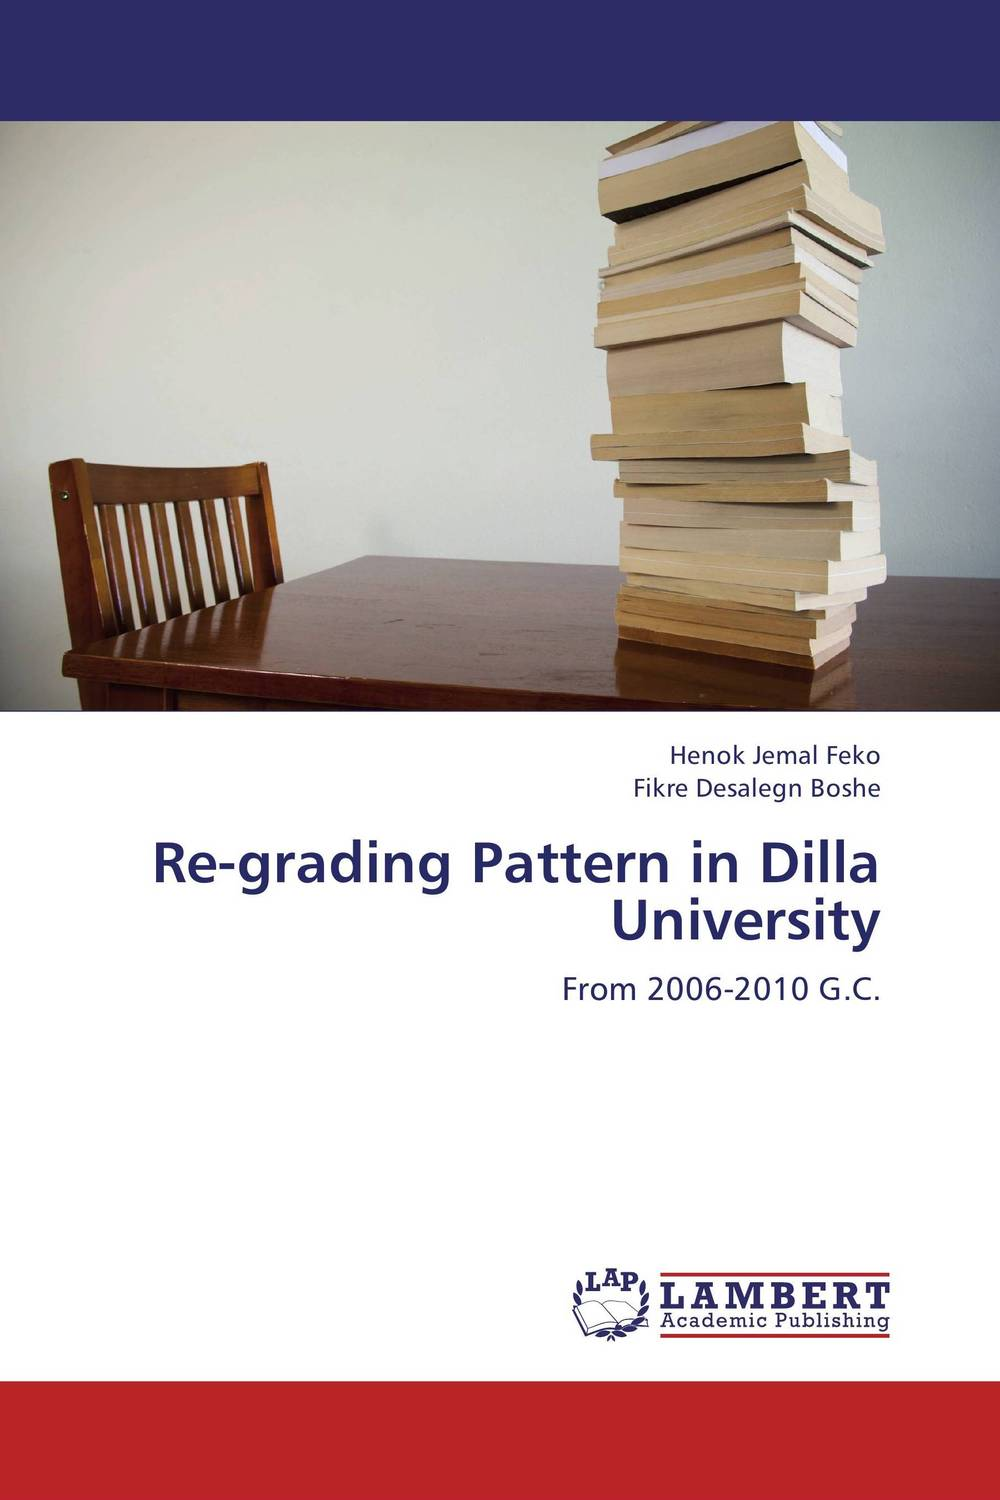 Re-grading Pattern in Dilla University